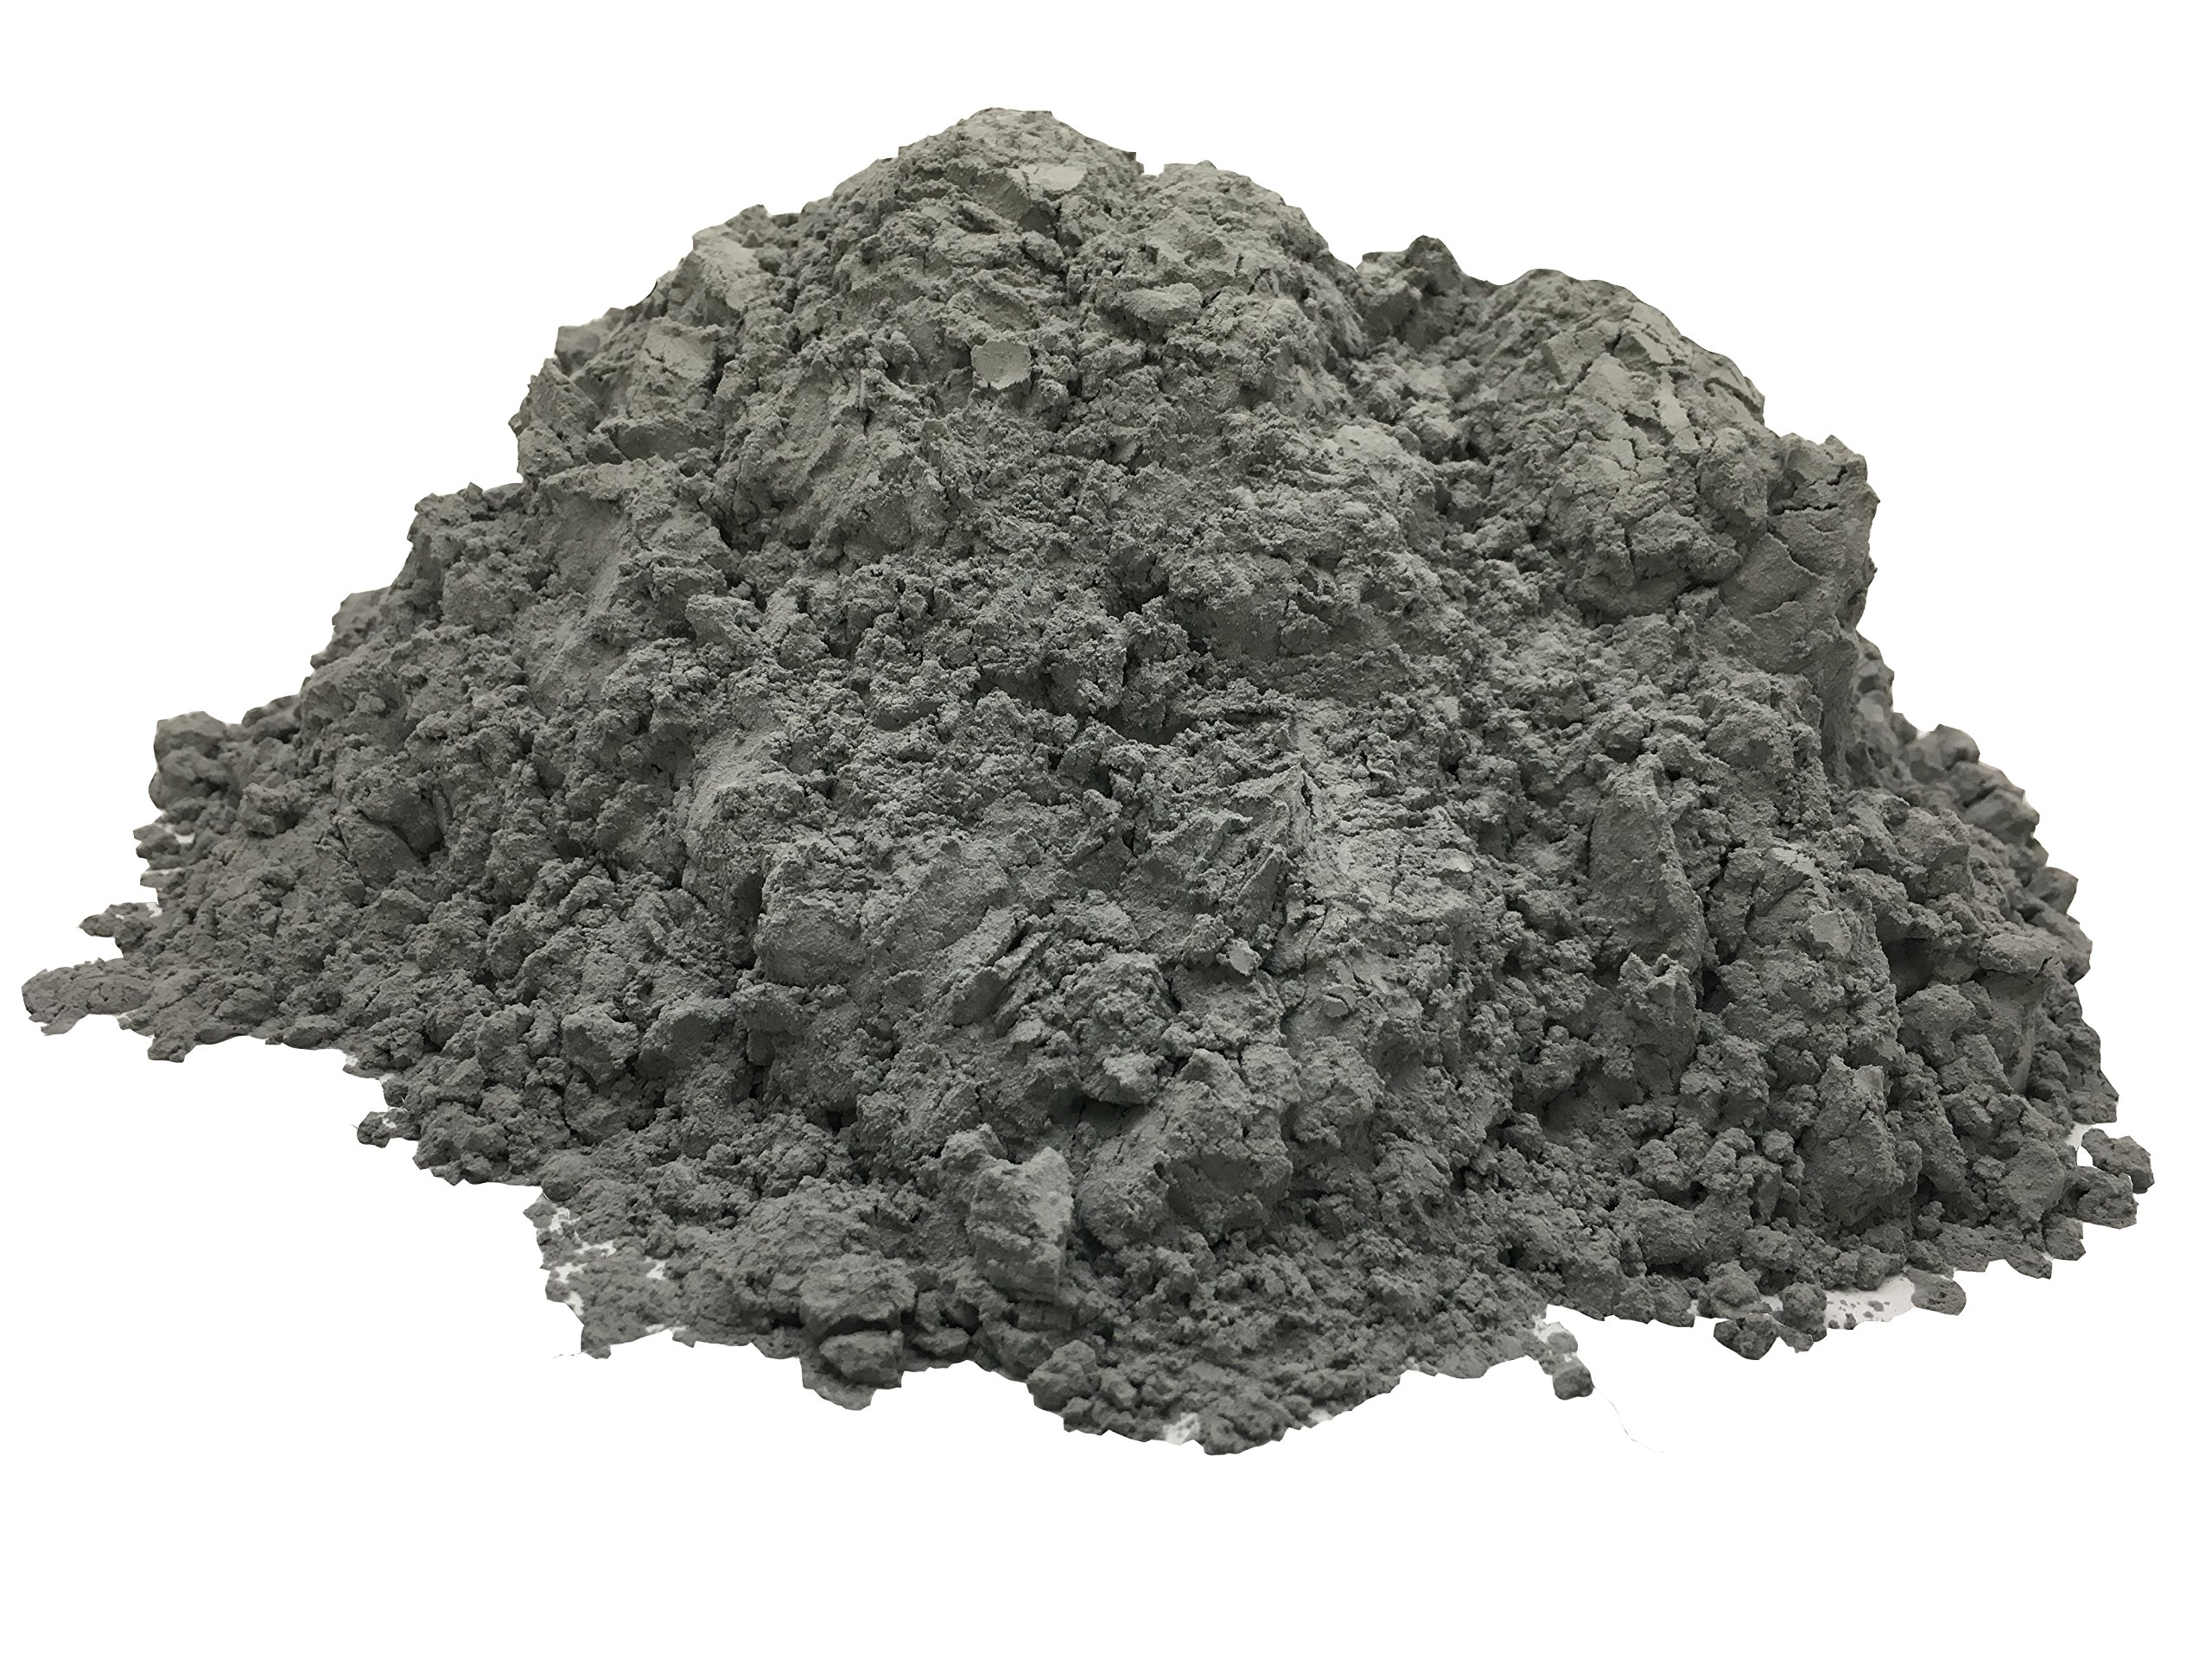 Aluminum Powder 5 Micron - 2.2 Pounds for a Range of Activities Such as Color Additives, Painting and Other Weekend Hobbies! by Mineral Dojo